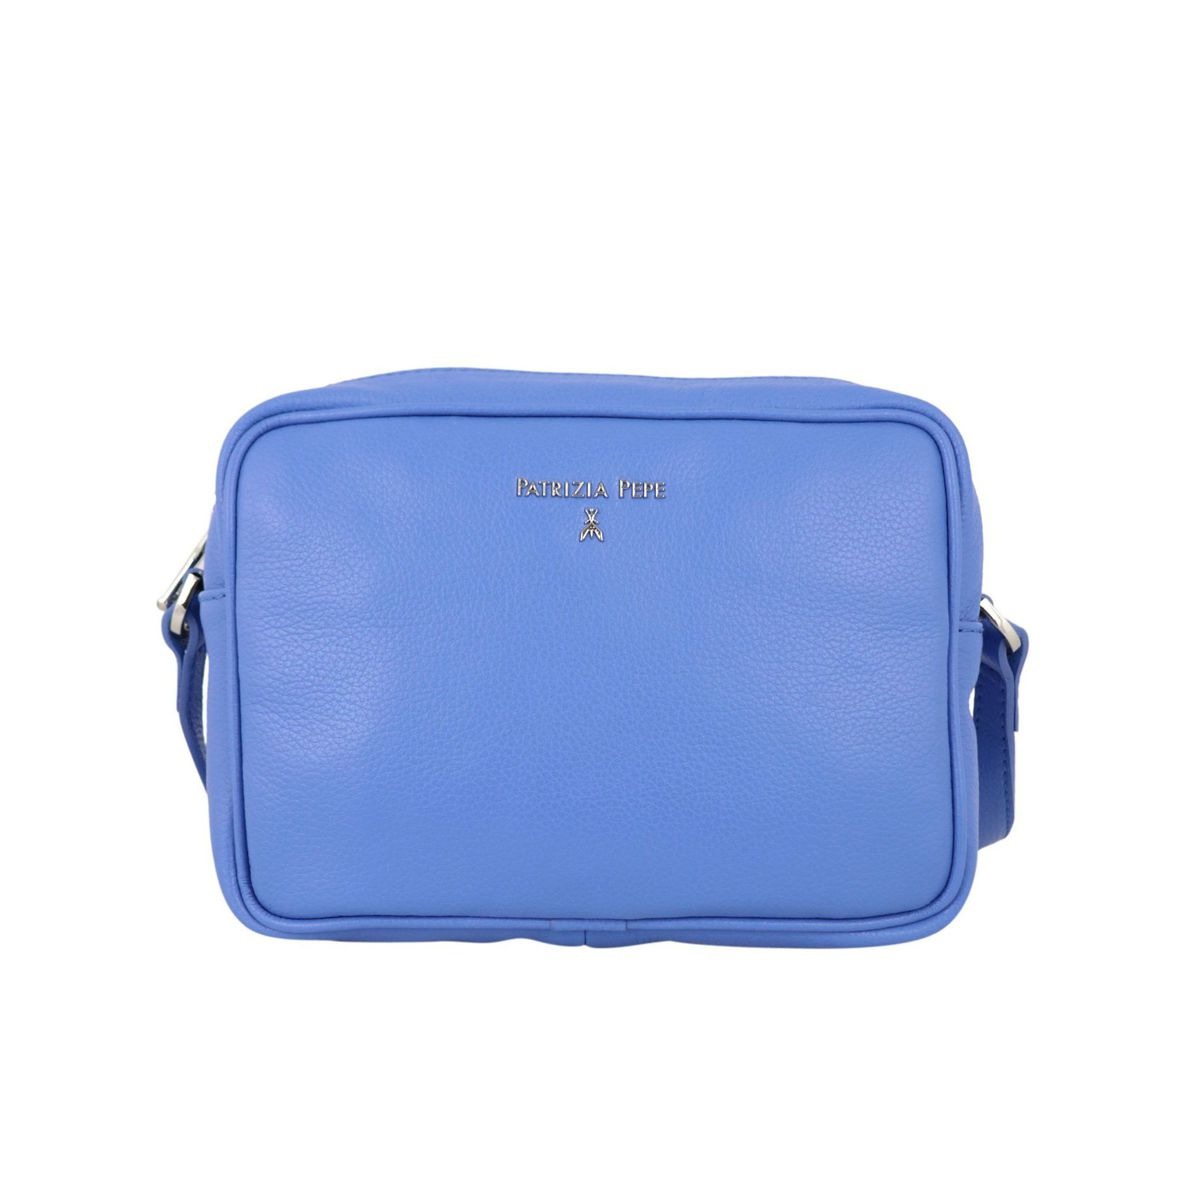 Small shoulder bag in textured leather with embossed metal logo Light blue Patrizia Pepe